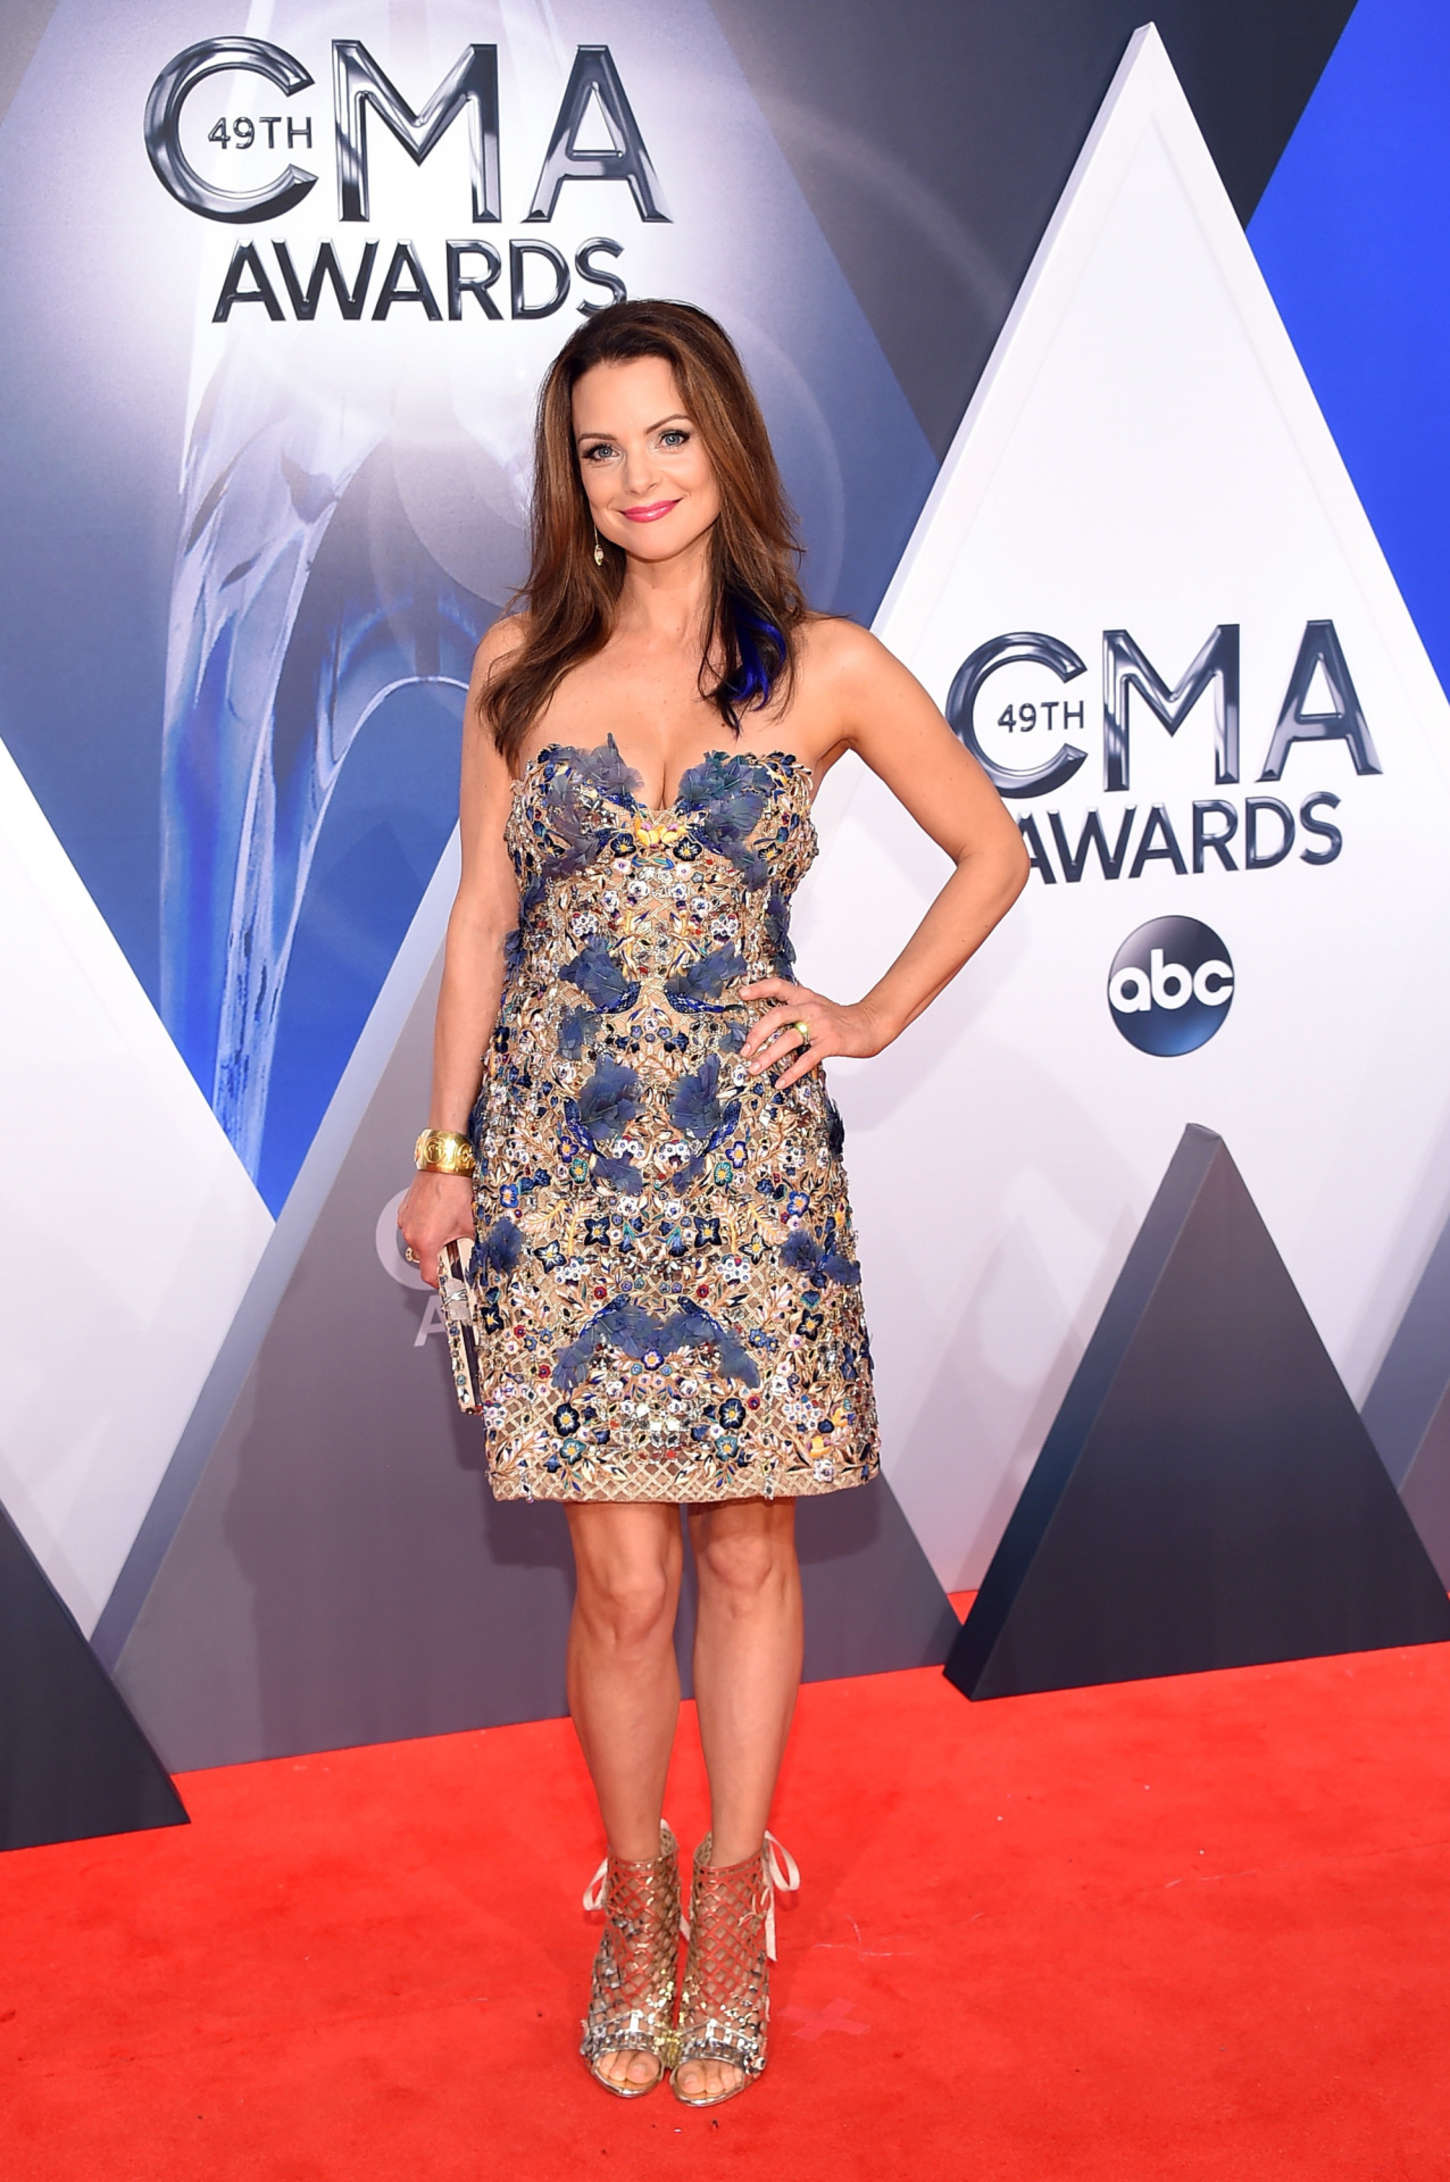 Kimberly Williams-Paisley For mobile